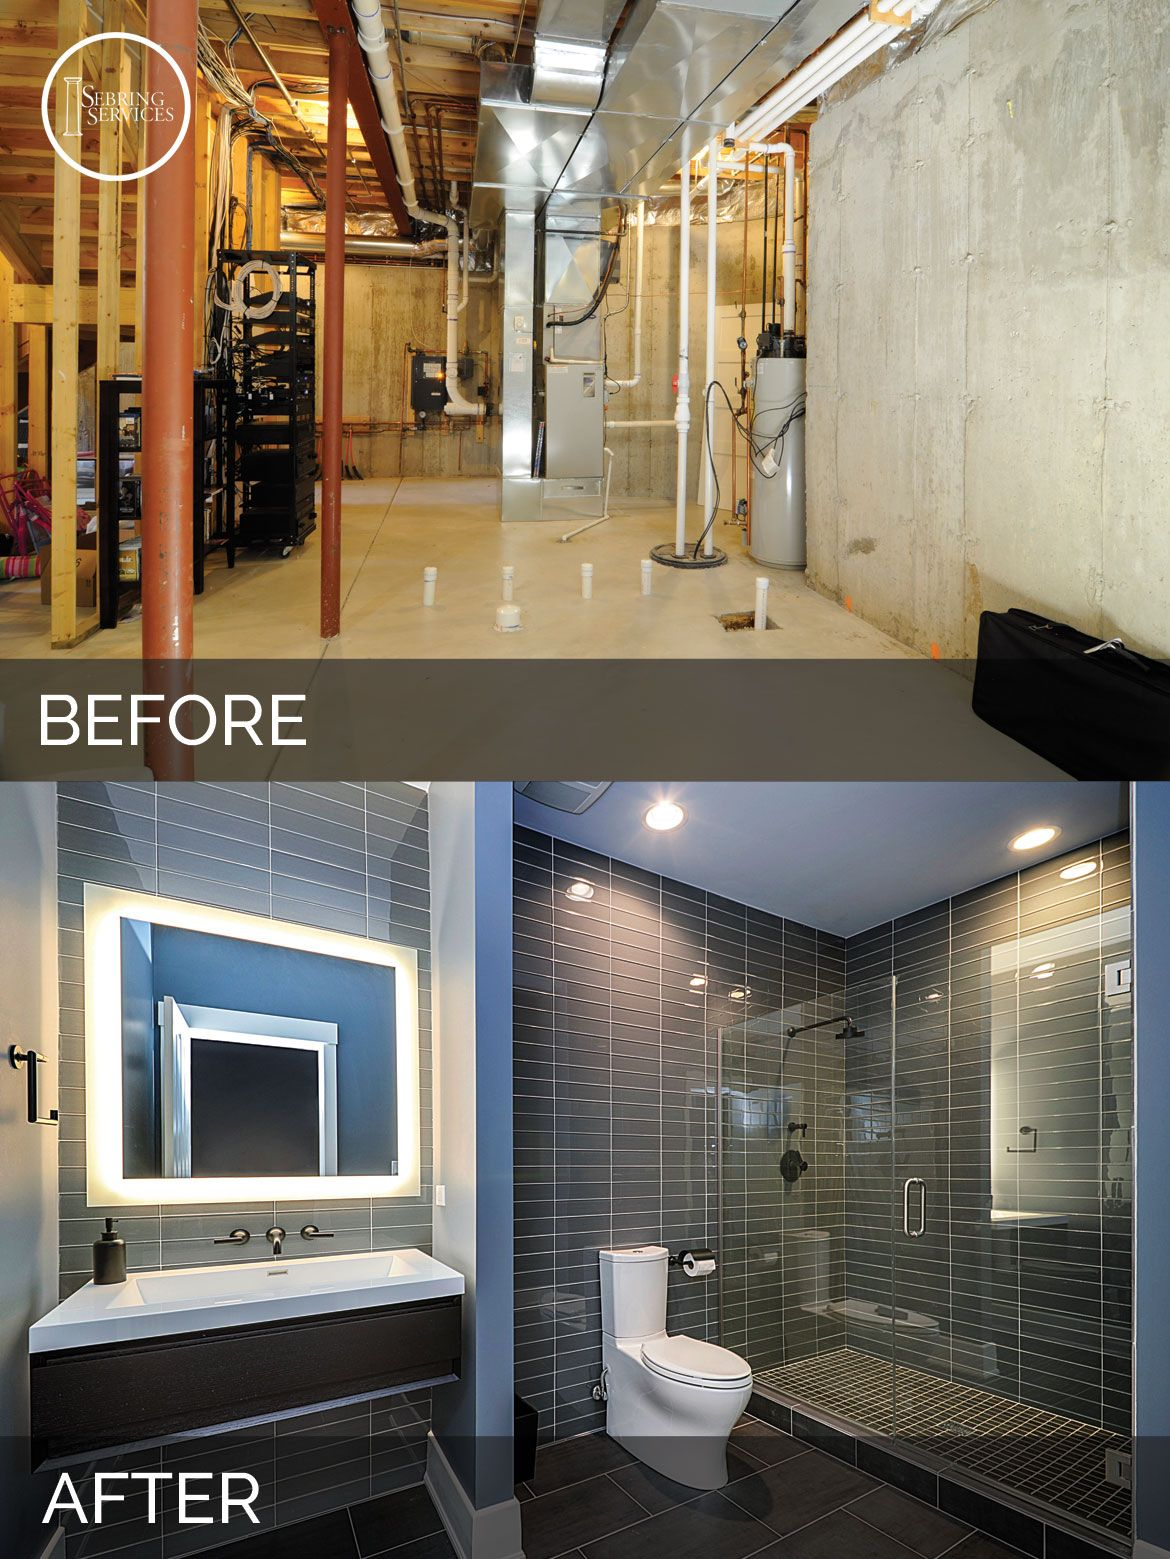 Basement Remodeling Ideas Before And After sidd & nisha's basement before & after pictures | basements